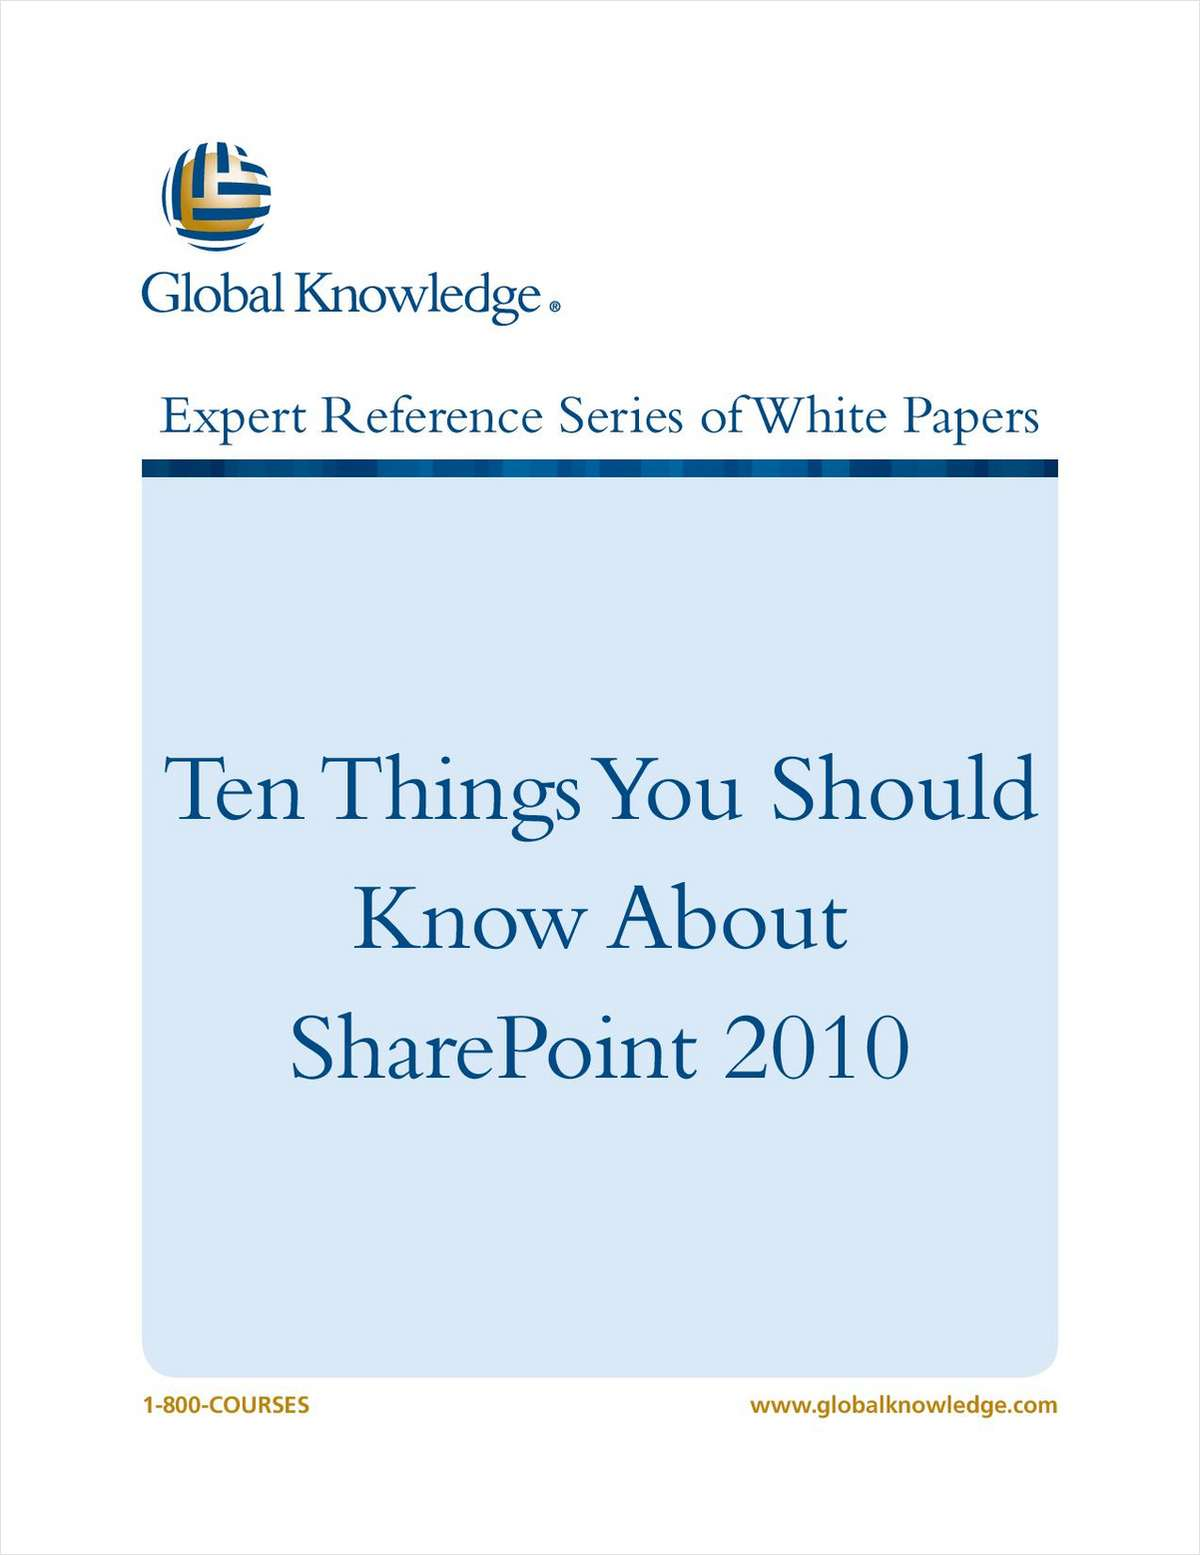 Ten Things You Should Know About SharePoint 2010